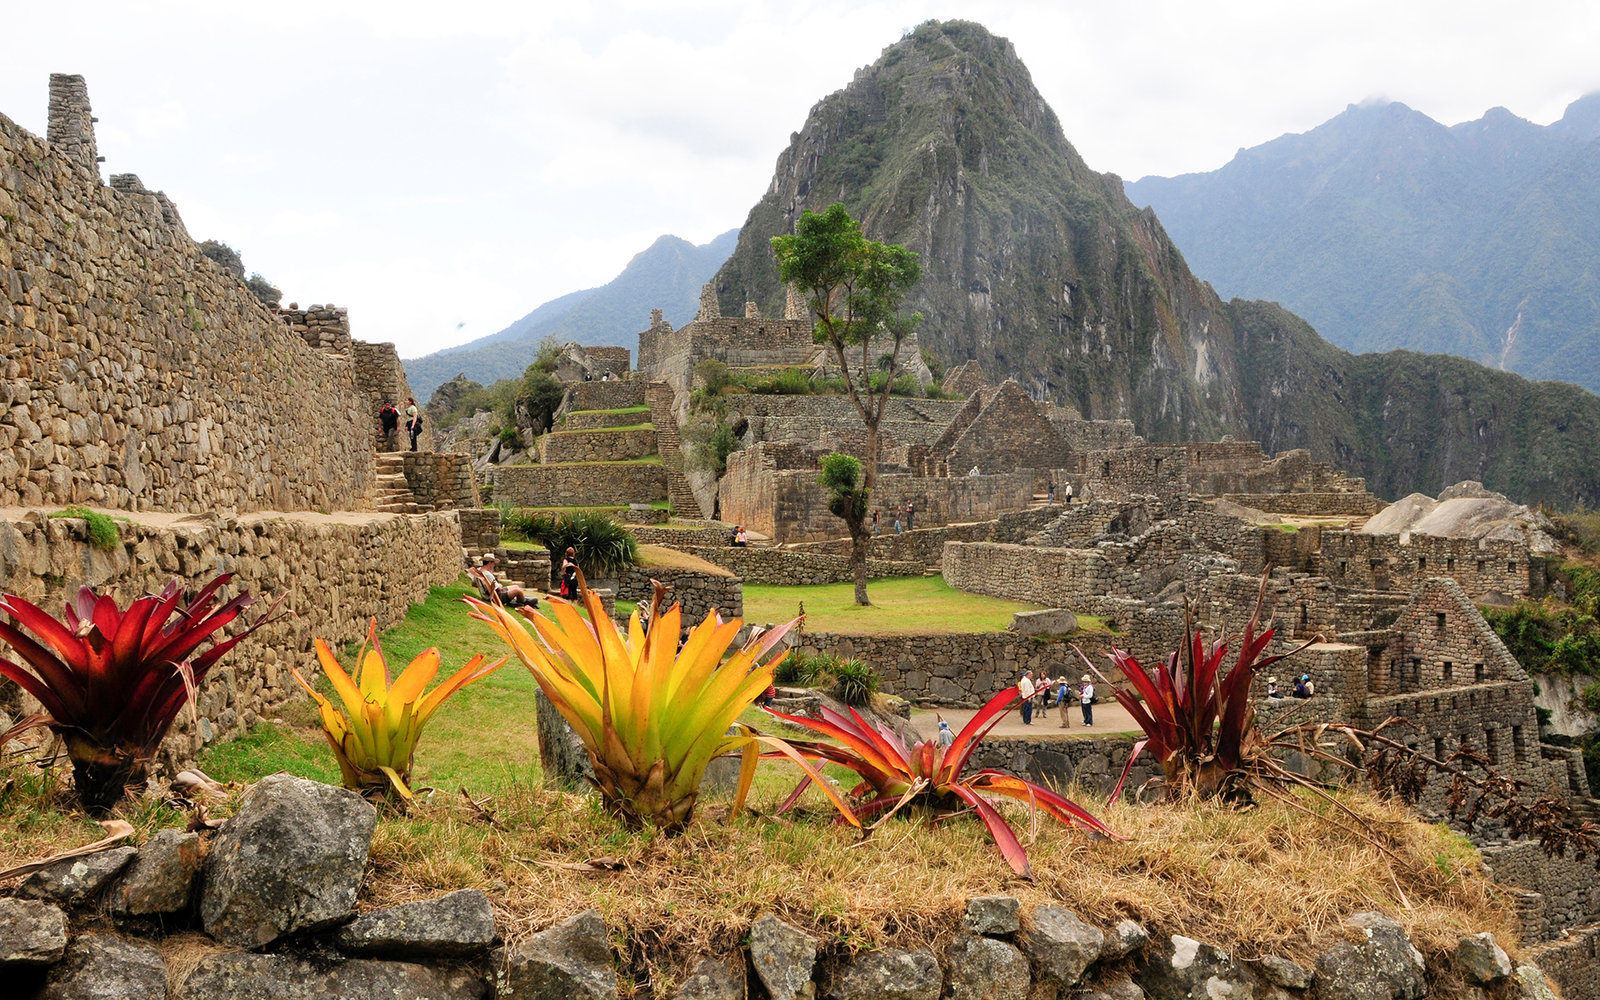 Flowers At Macchu Picchu, Peru. (Photo by Education Images/UIG via Getty Images)